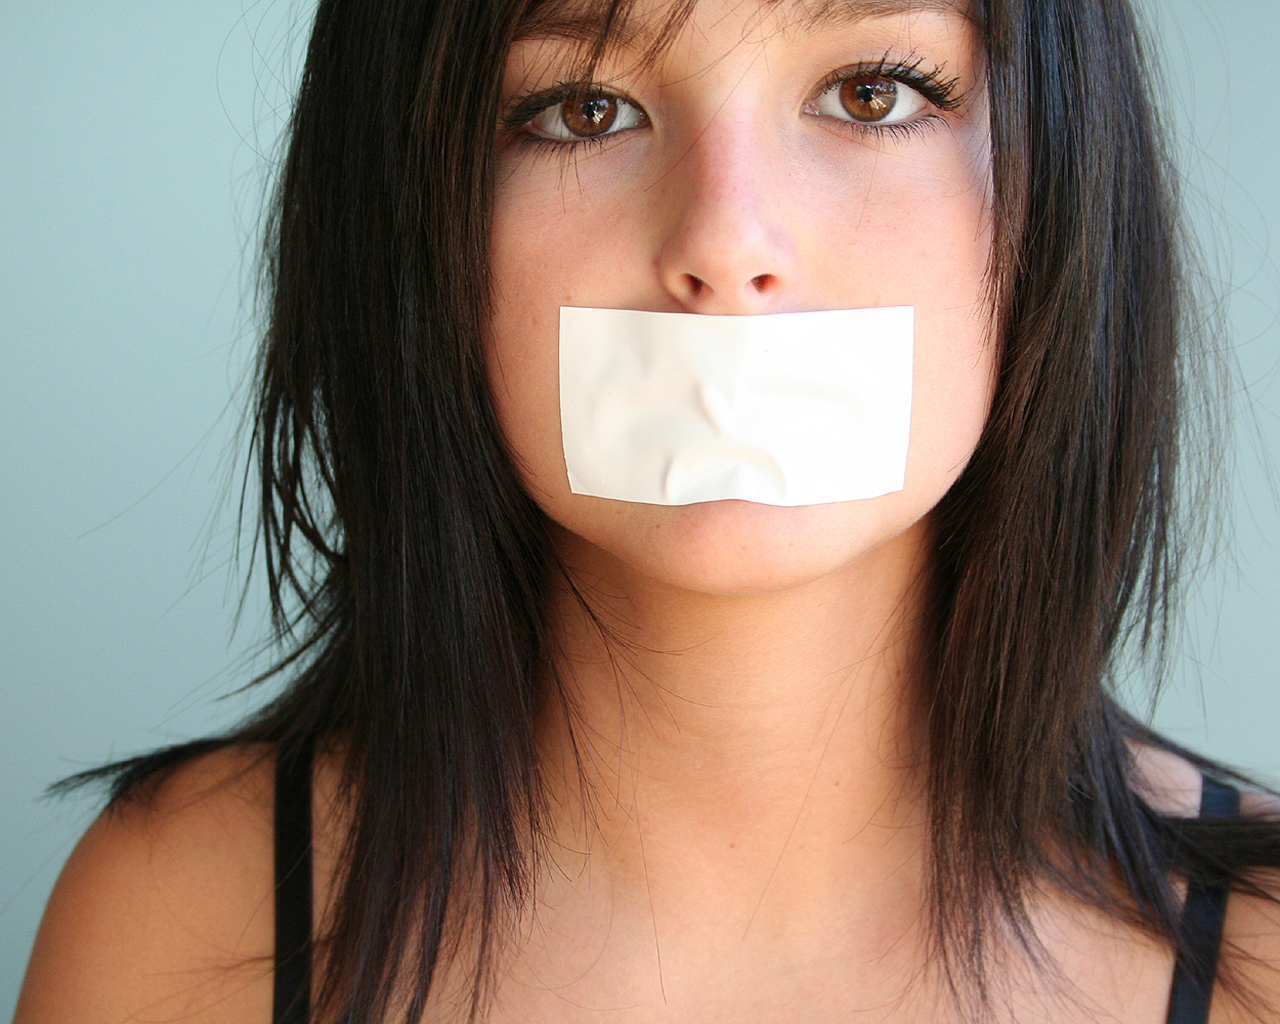 Girl With Mouth Taped Shut Wallpaper I Should Have Said Something I Should Have Said